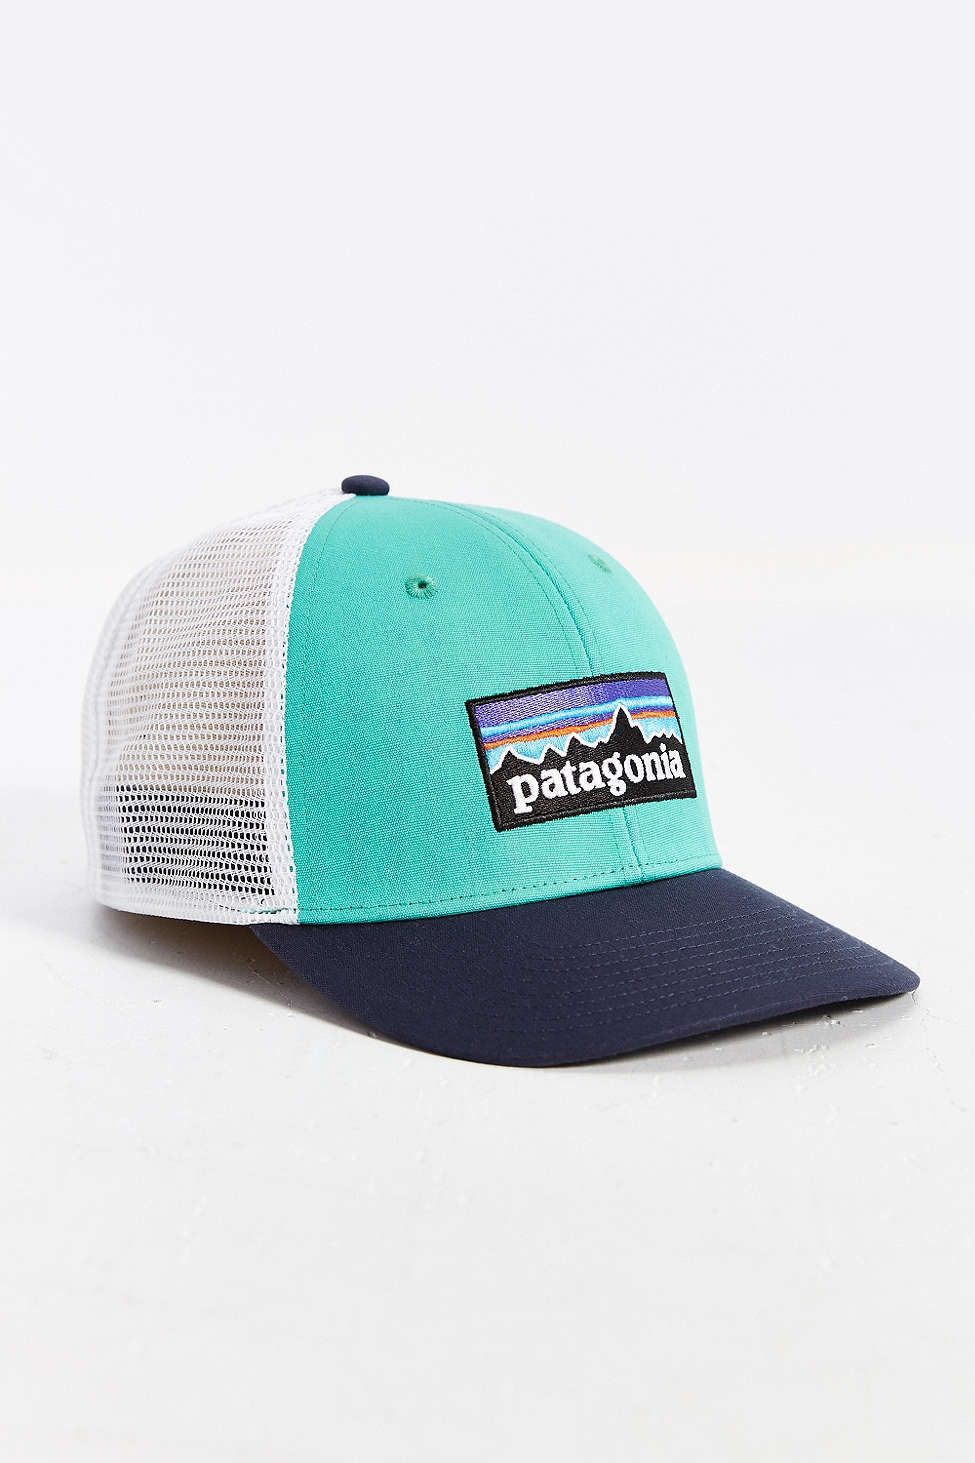 078a970d086909 Patagonia Trucker Hat | Patagonia in 2019 | Hats, Patagonia hat, Clothes